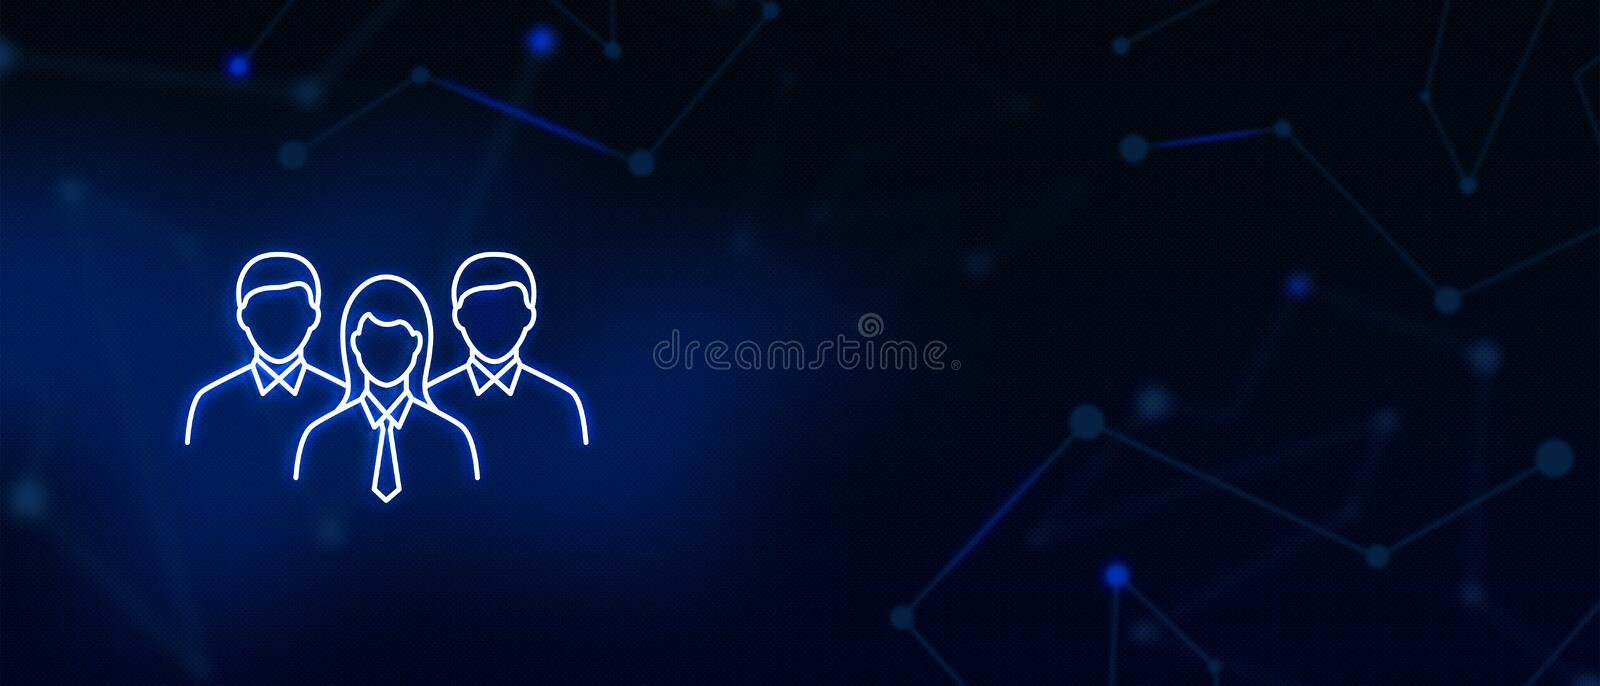 Team players, Professionals, Managers, corporate group, icon, Contact us, Website banner, background. Team players, Professionals group, Managers, Corporate vector illustration